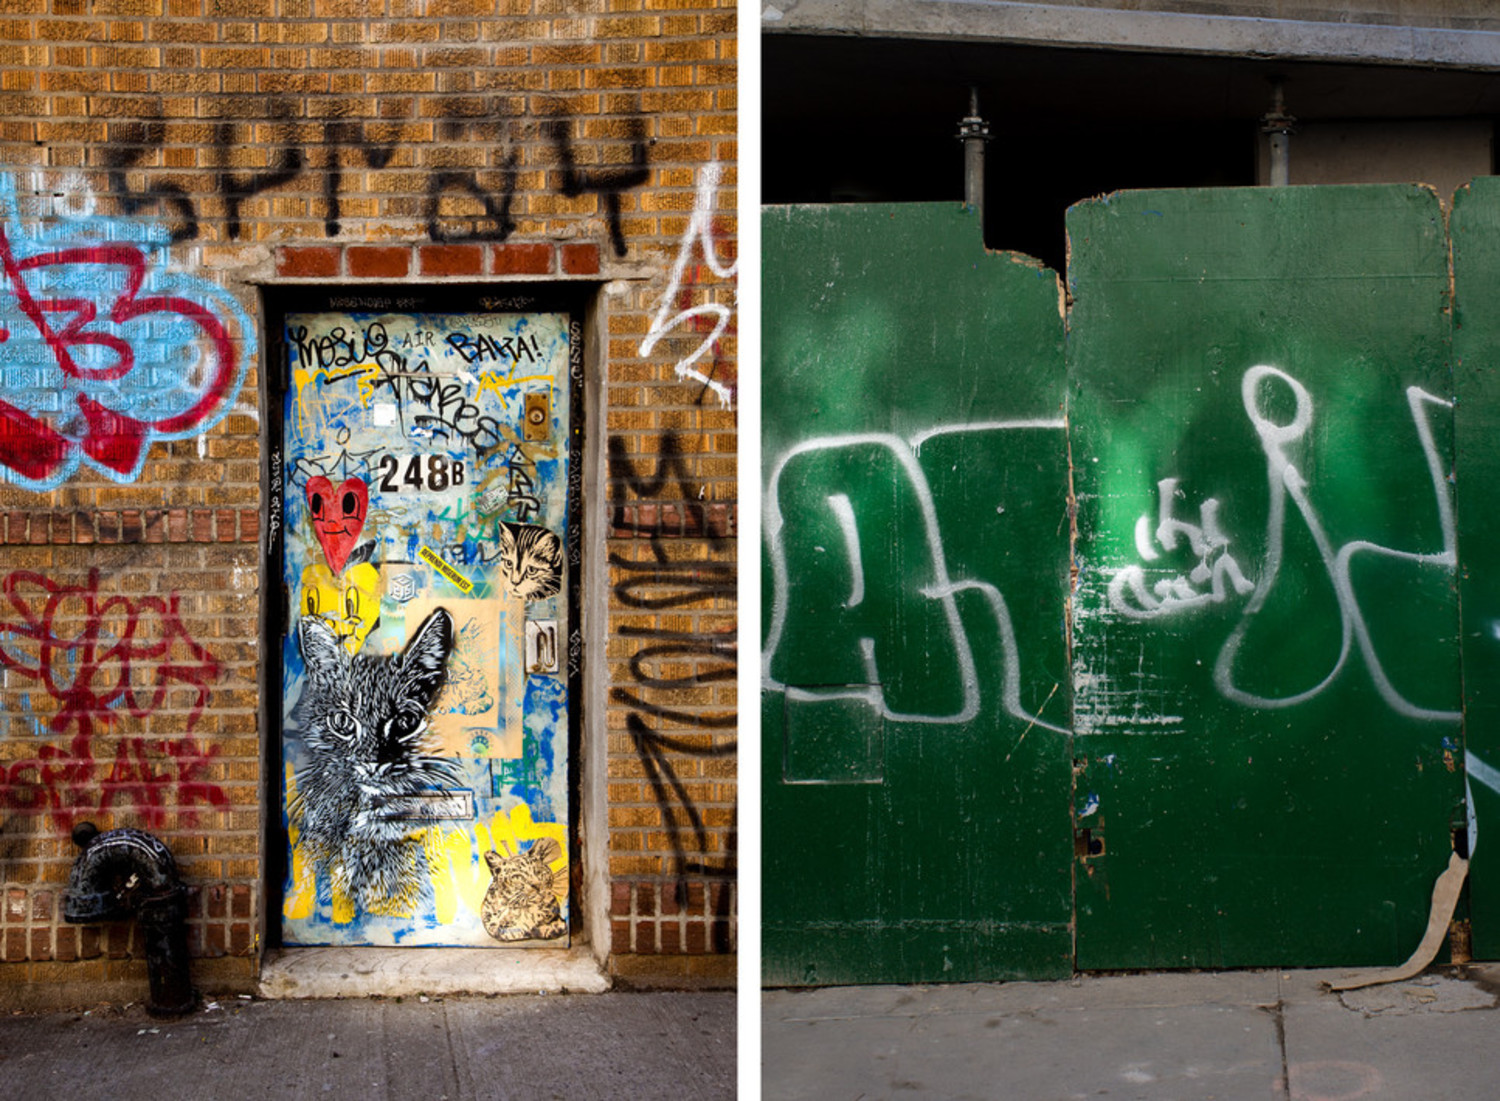 246-248 NORTH 8TH STREET, 2010 & 2015